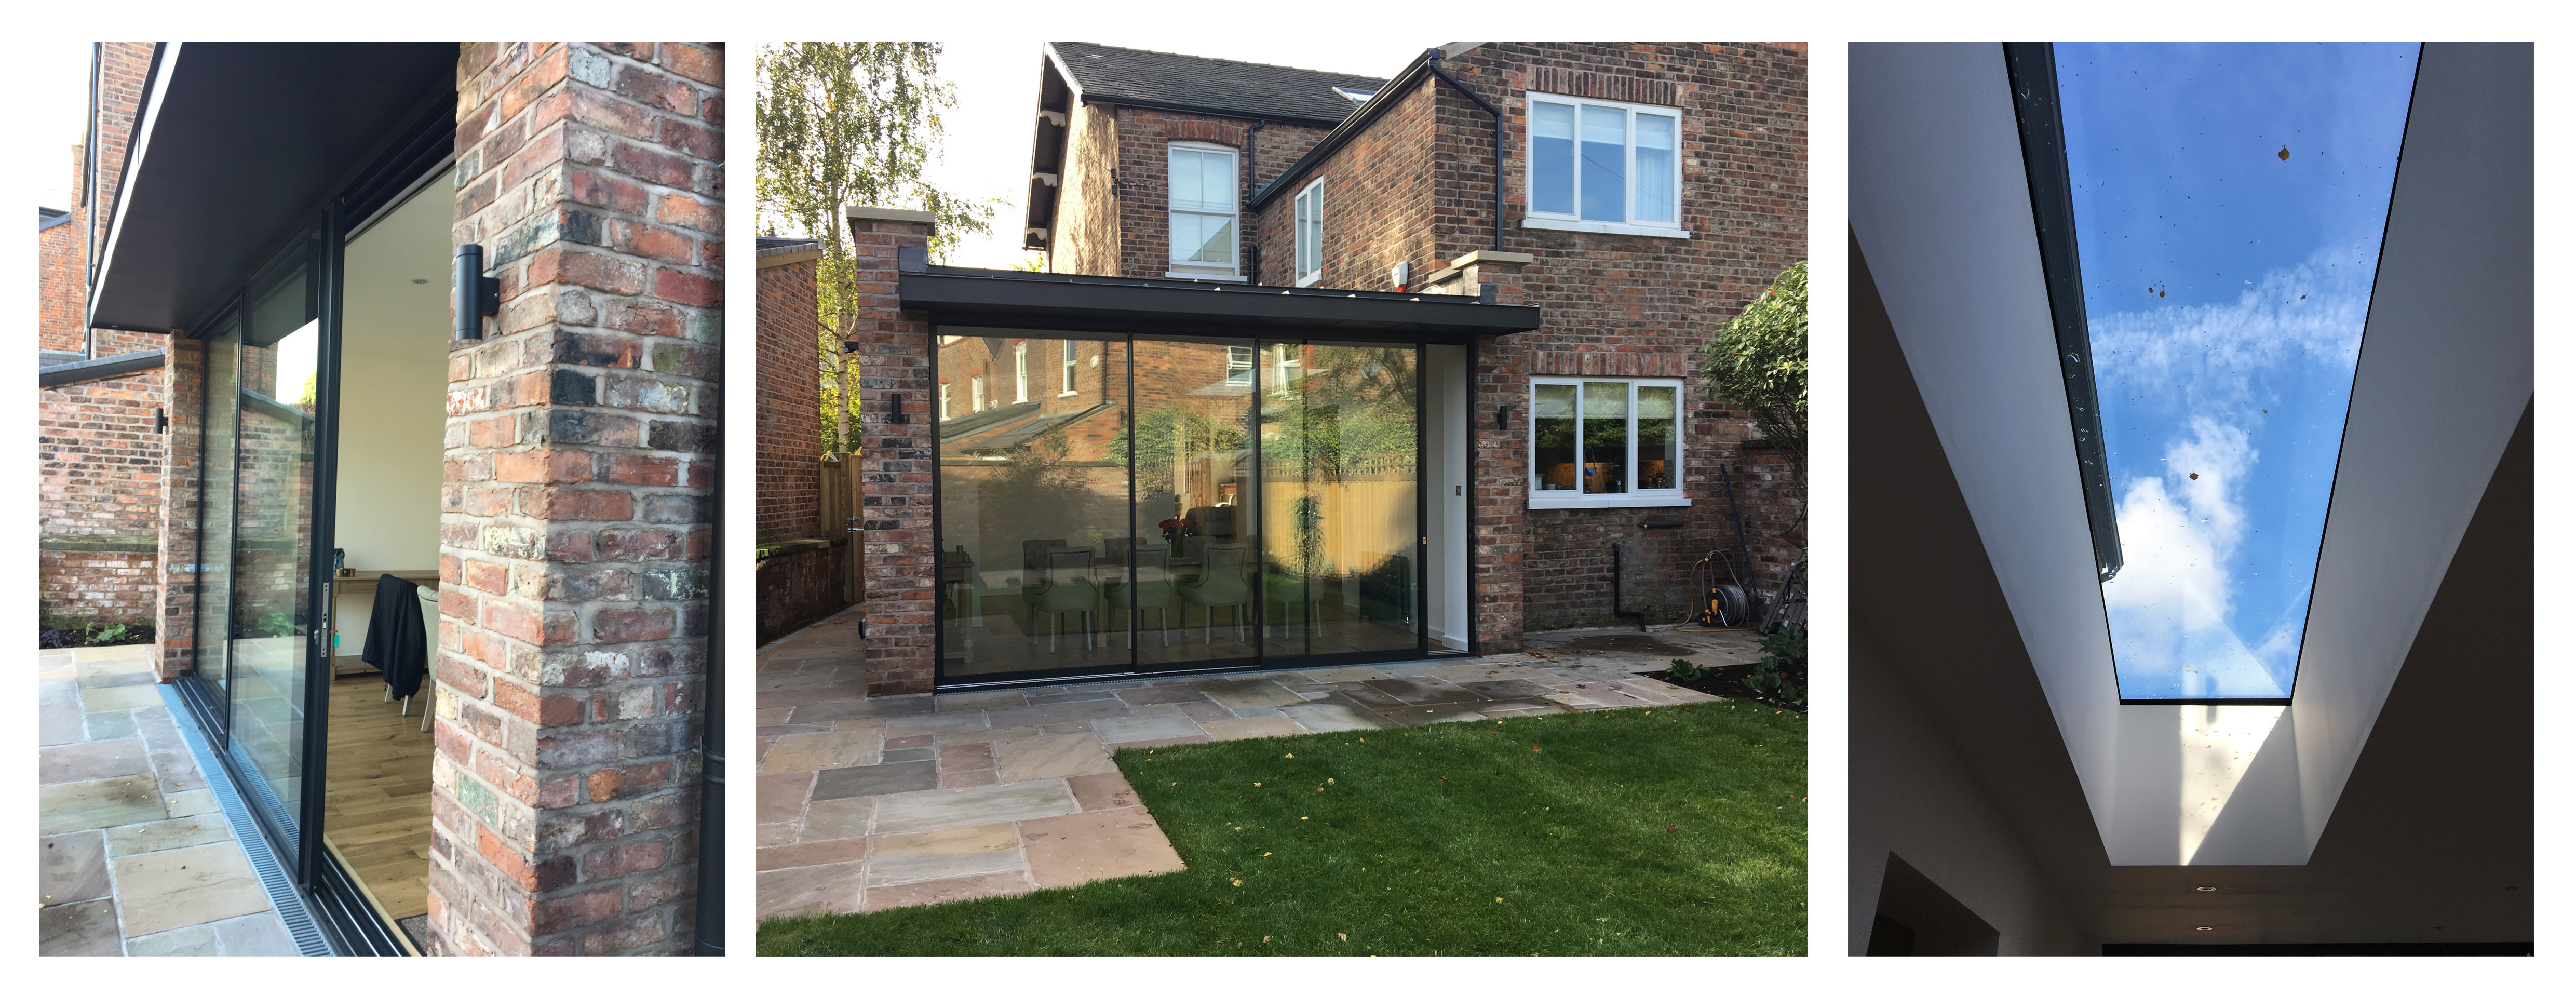 Garden Room Extension Cb3 Design Architects